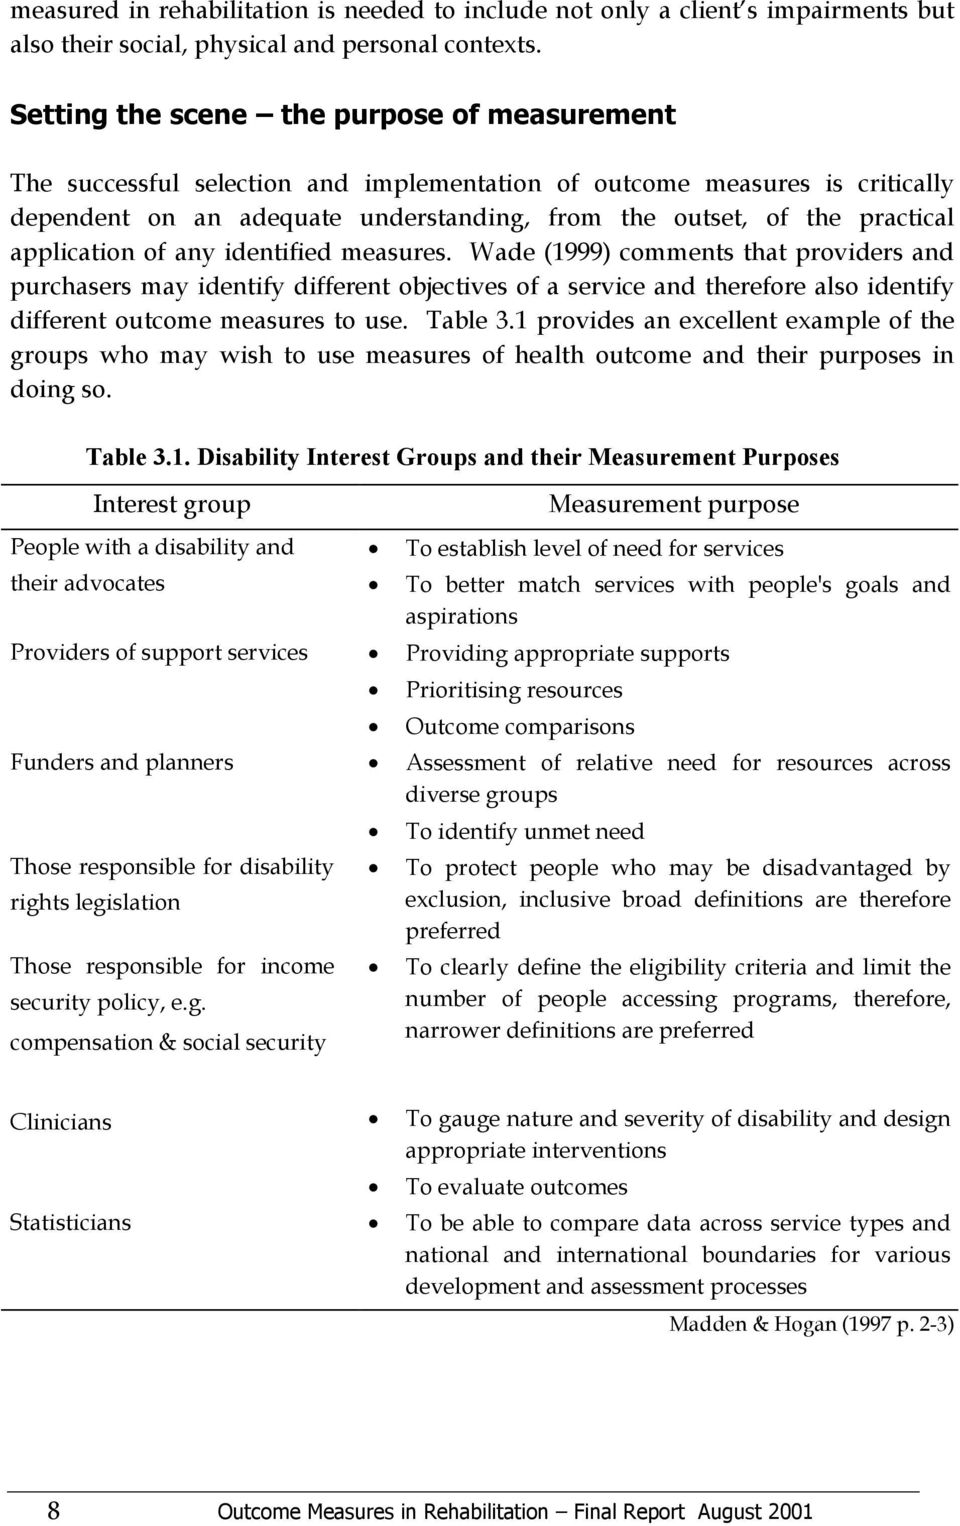 application of any identified measures. Wade (1999) comments that providers and purchasers may identify different objectives of a service and therefore also identify different outcome measures to use.